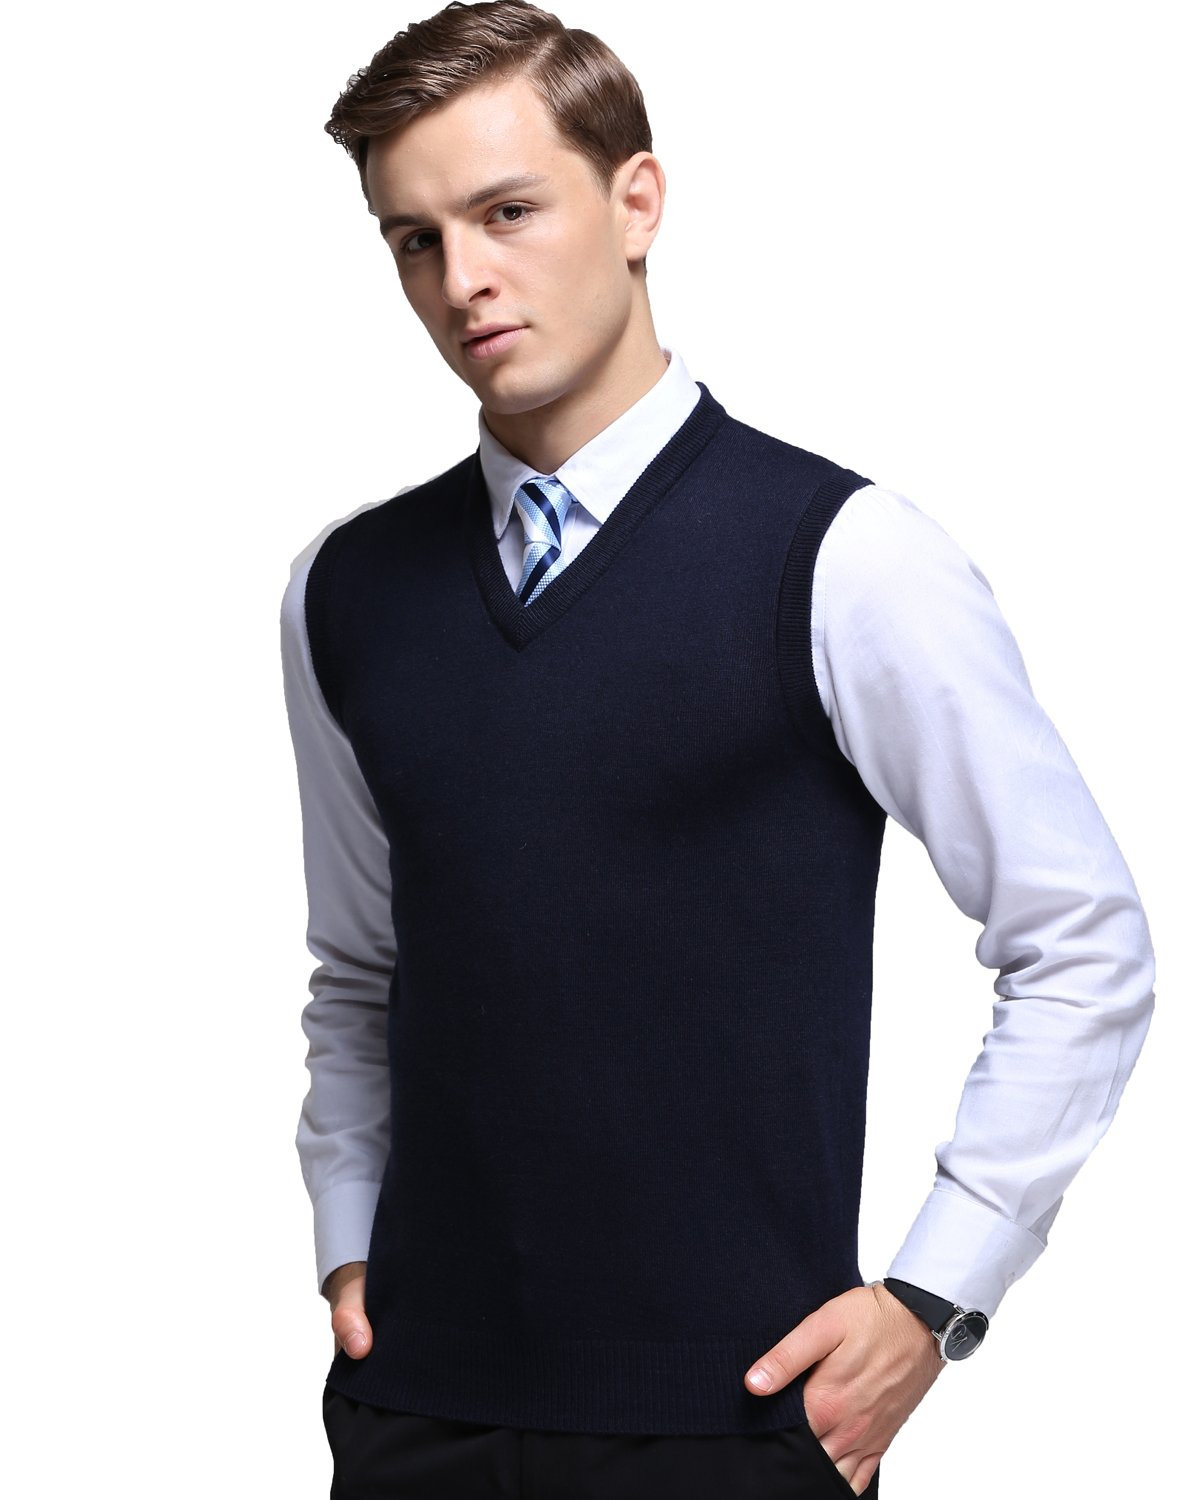 Kinlonsair Mens Casual Slim Fit Solid Lightweight V-Neck Sweater Vest,Blue,Small (US)